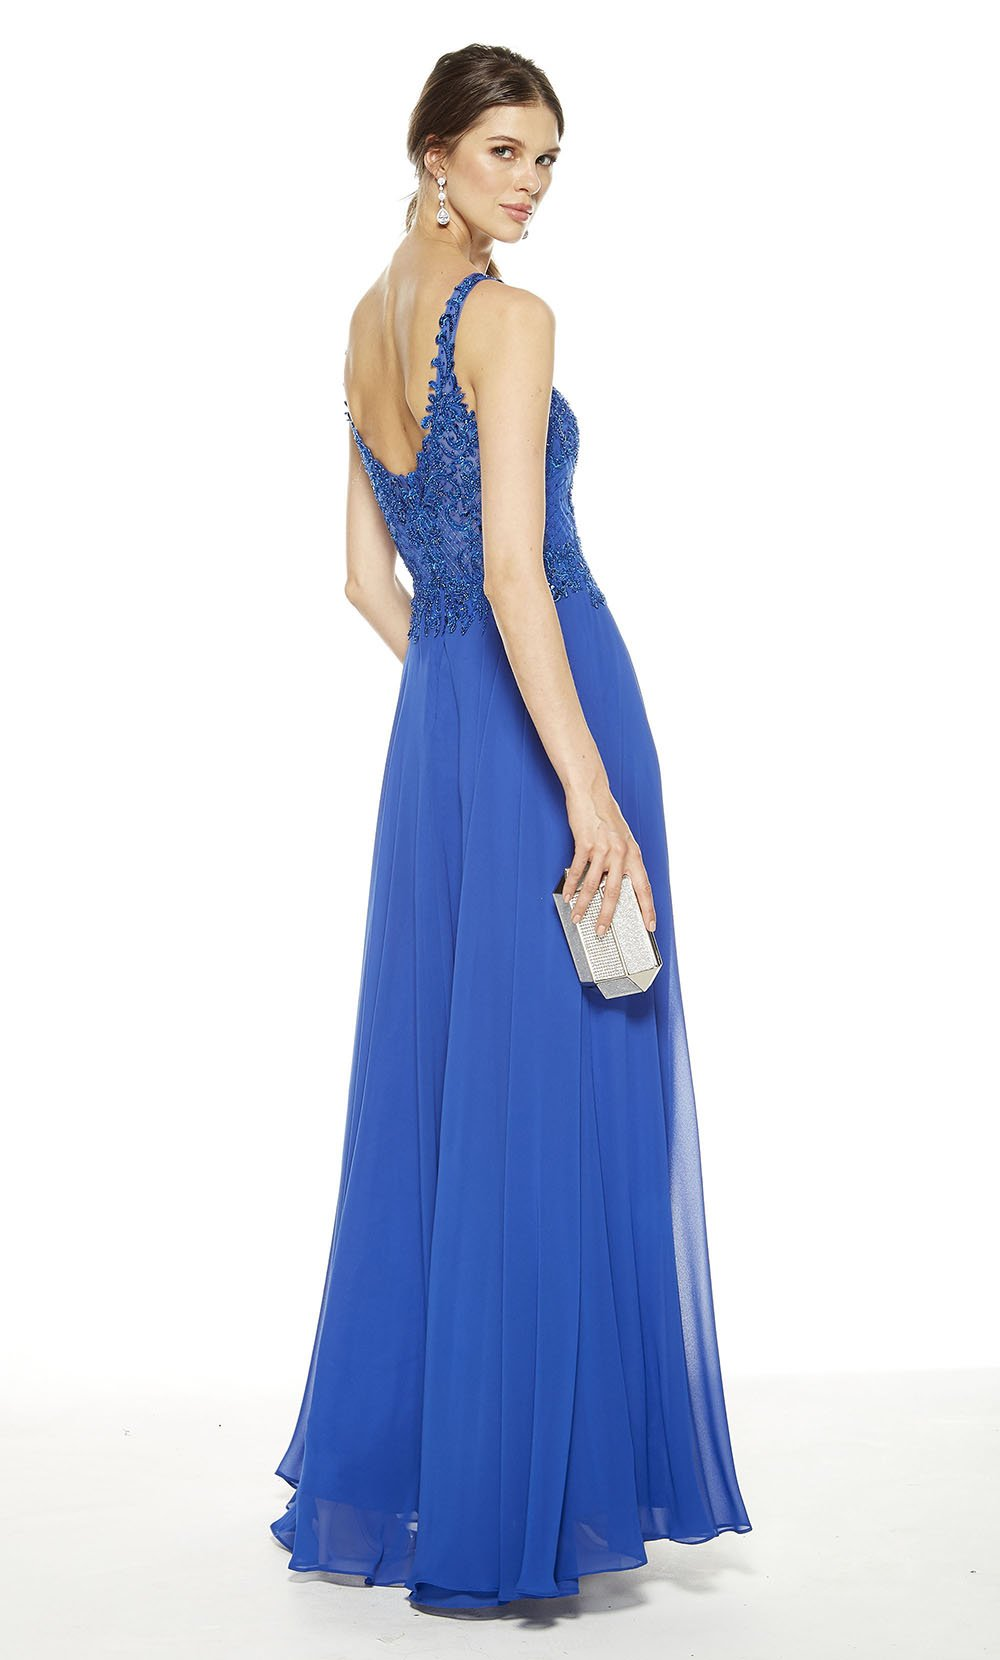 Alyce Paris - 27395SC Embellished Sleeveless V-Neck Bodice A-Line Gown